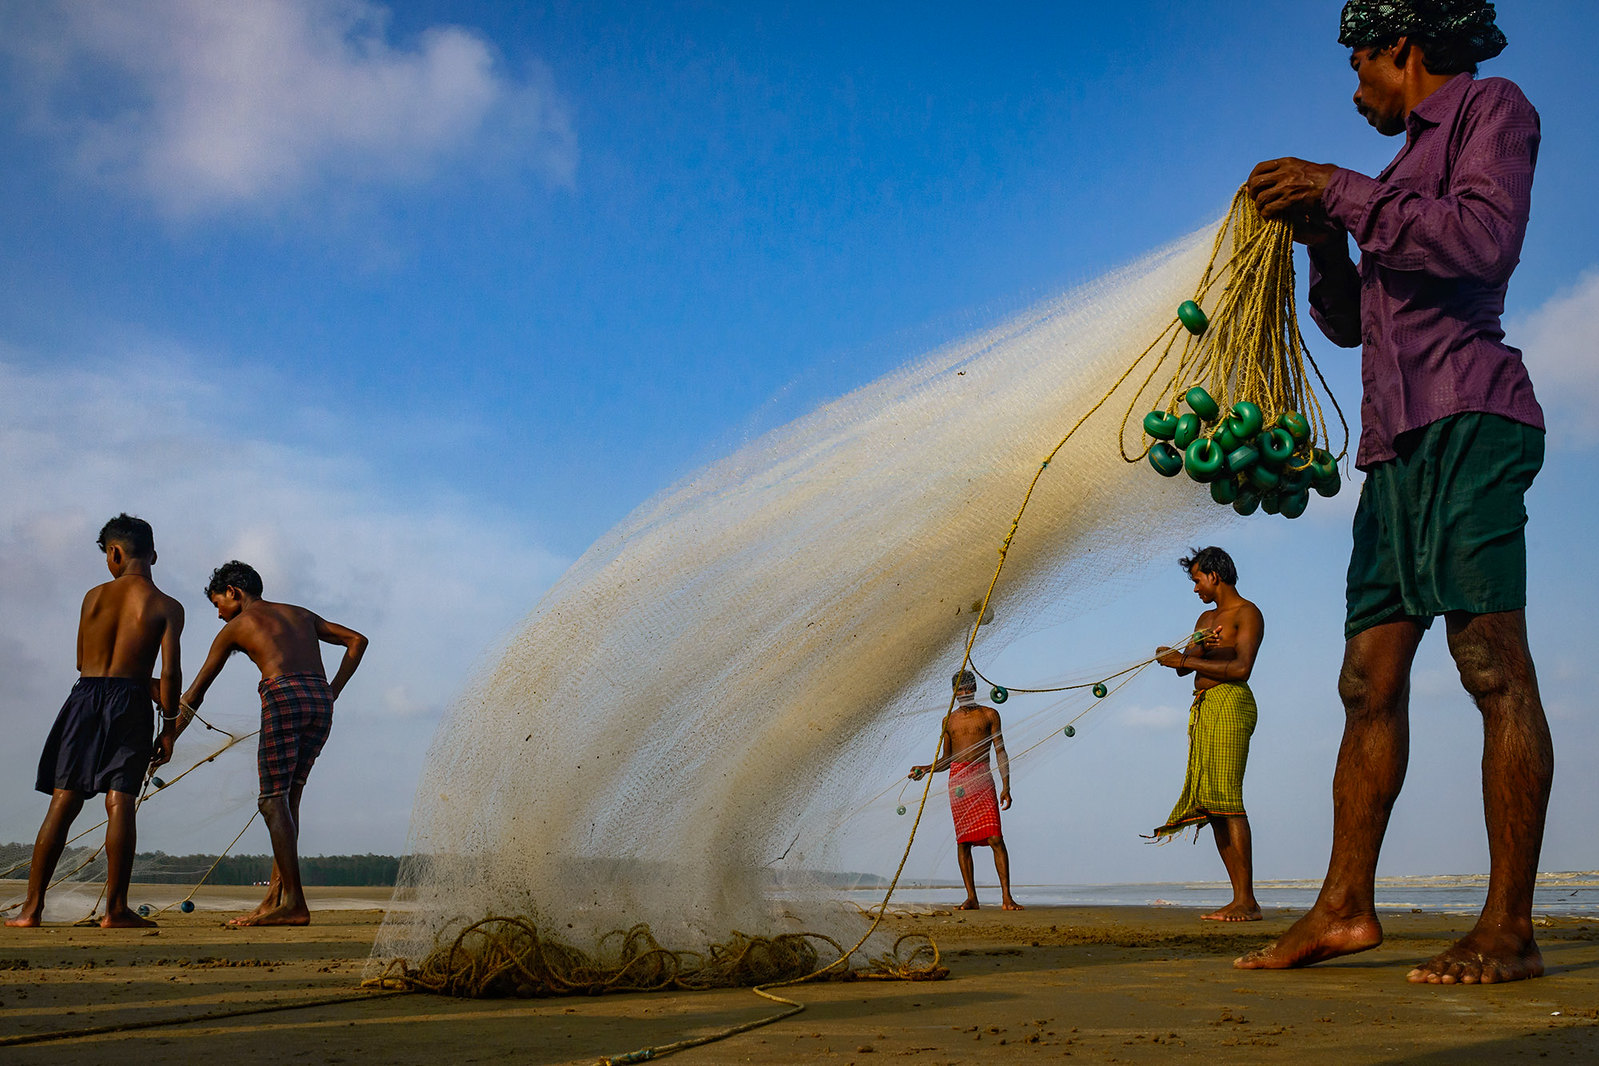 Fishermen 5 | by SaumalyaGhosh.com